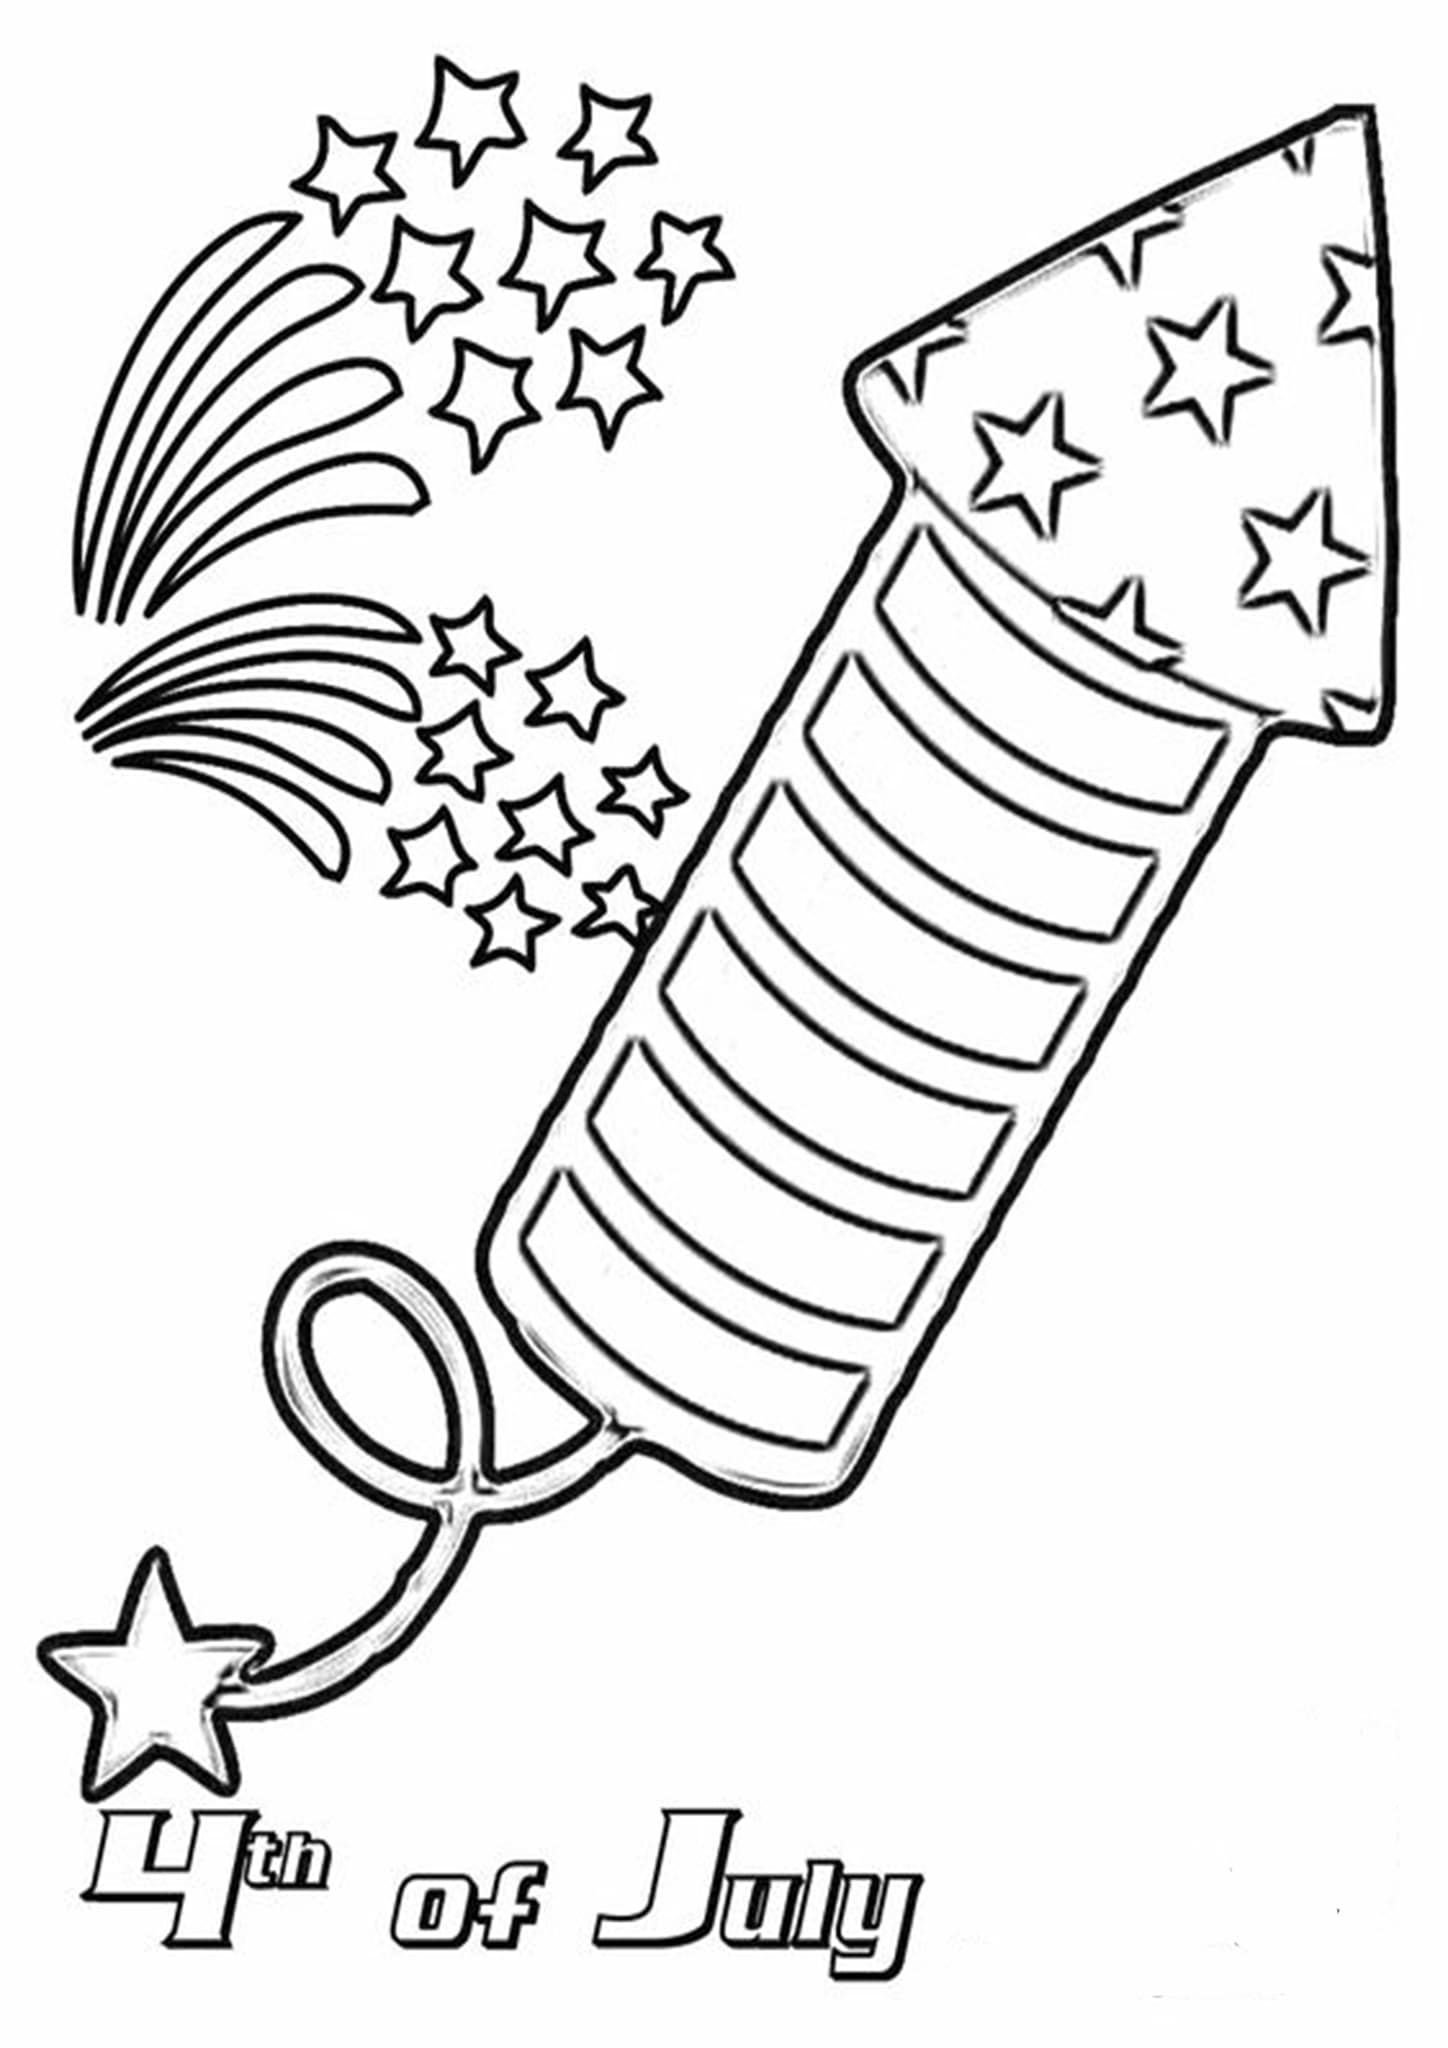 Free Easy To Print 4th Of July Coloring Pages Memorial Day Coloring Pages American Flag Coloring Page Snoopy Coloring Pages